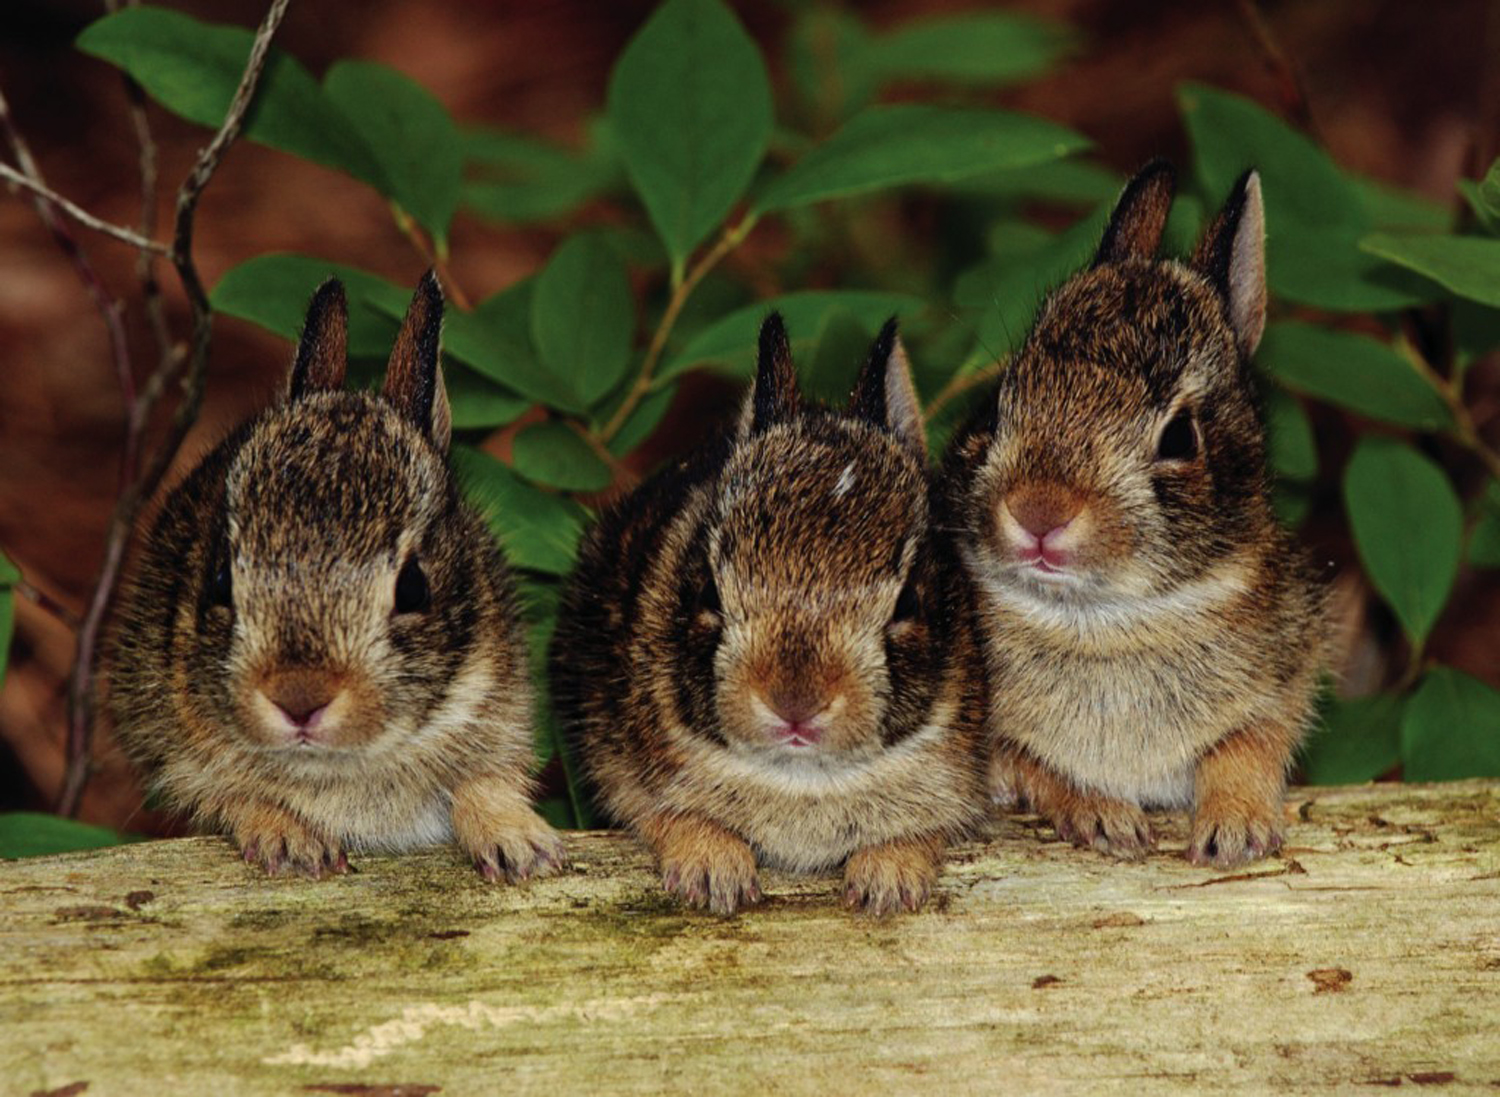 Cottontails